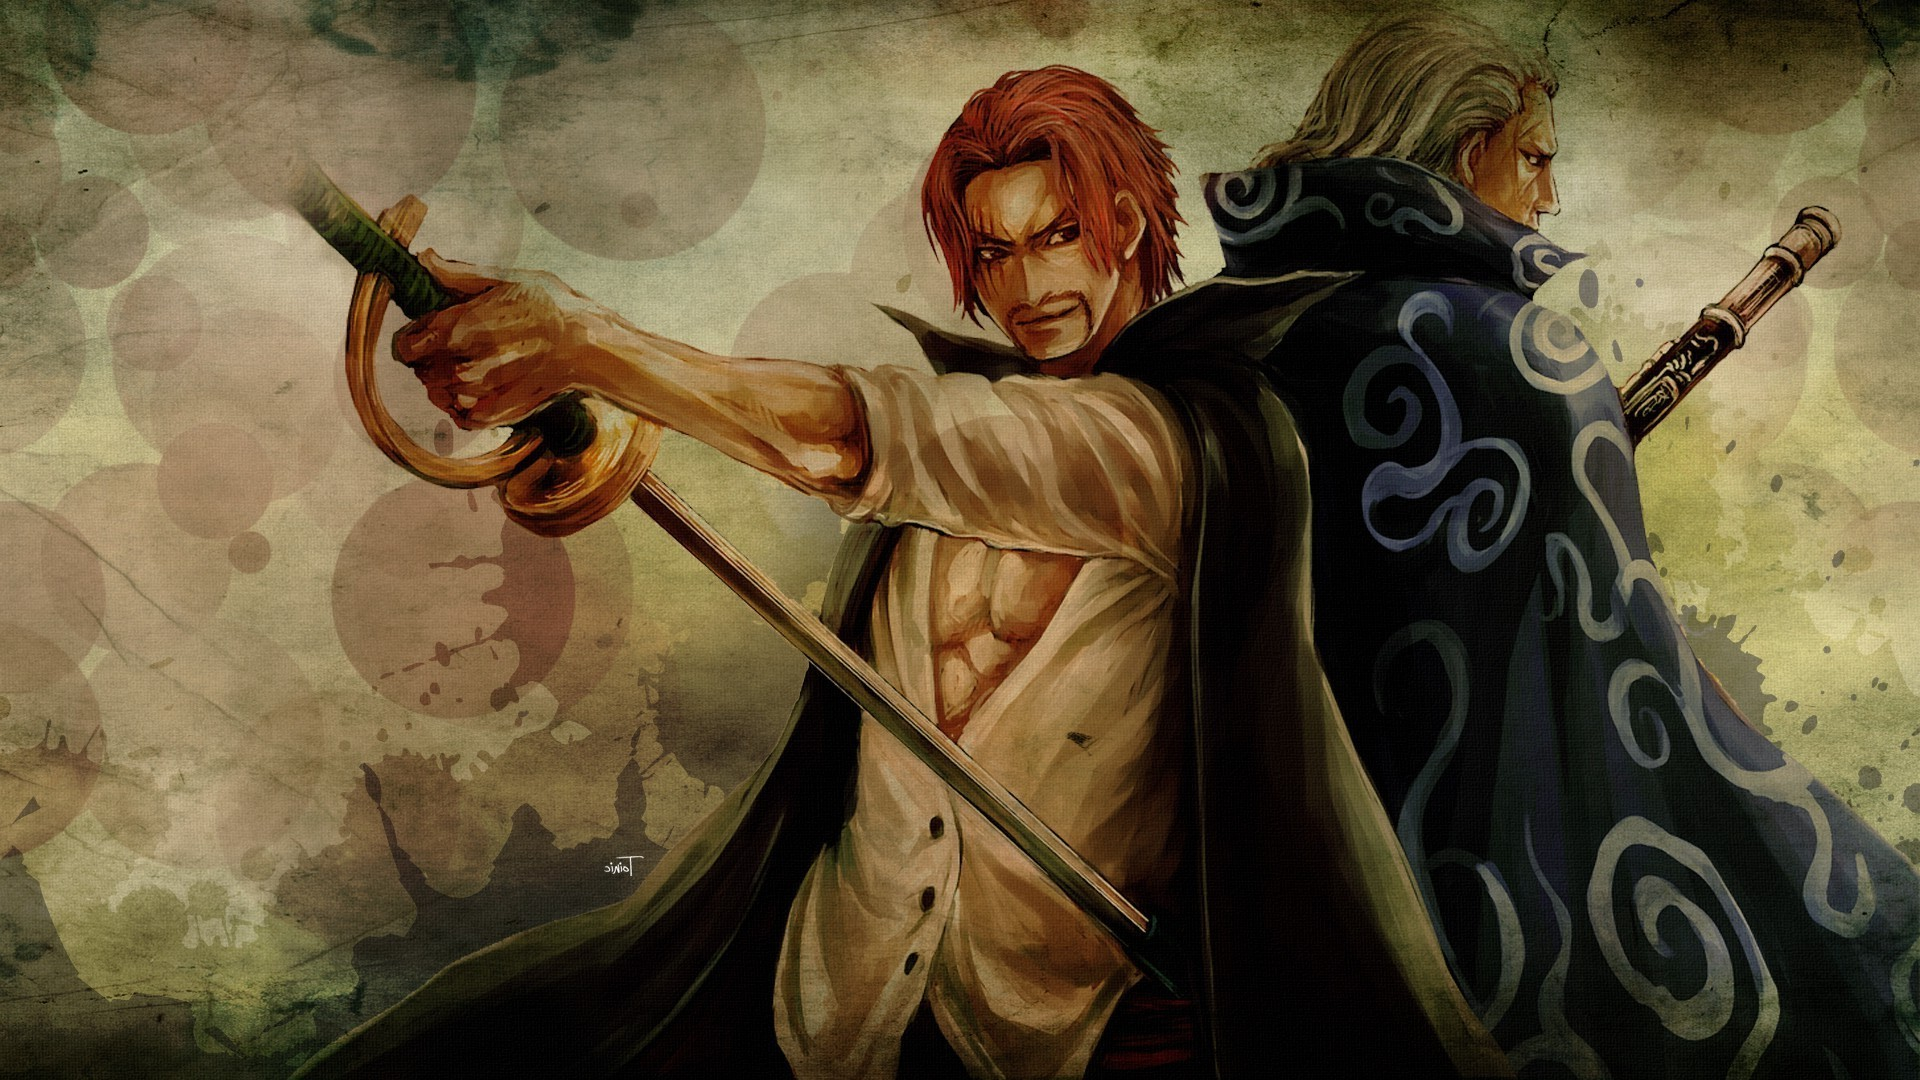 1920x1080 One Piece Wallpapers Shanks by Janet Nagao #9